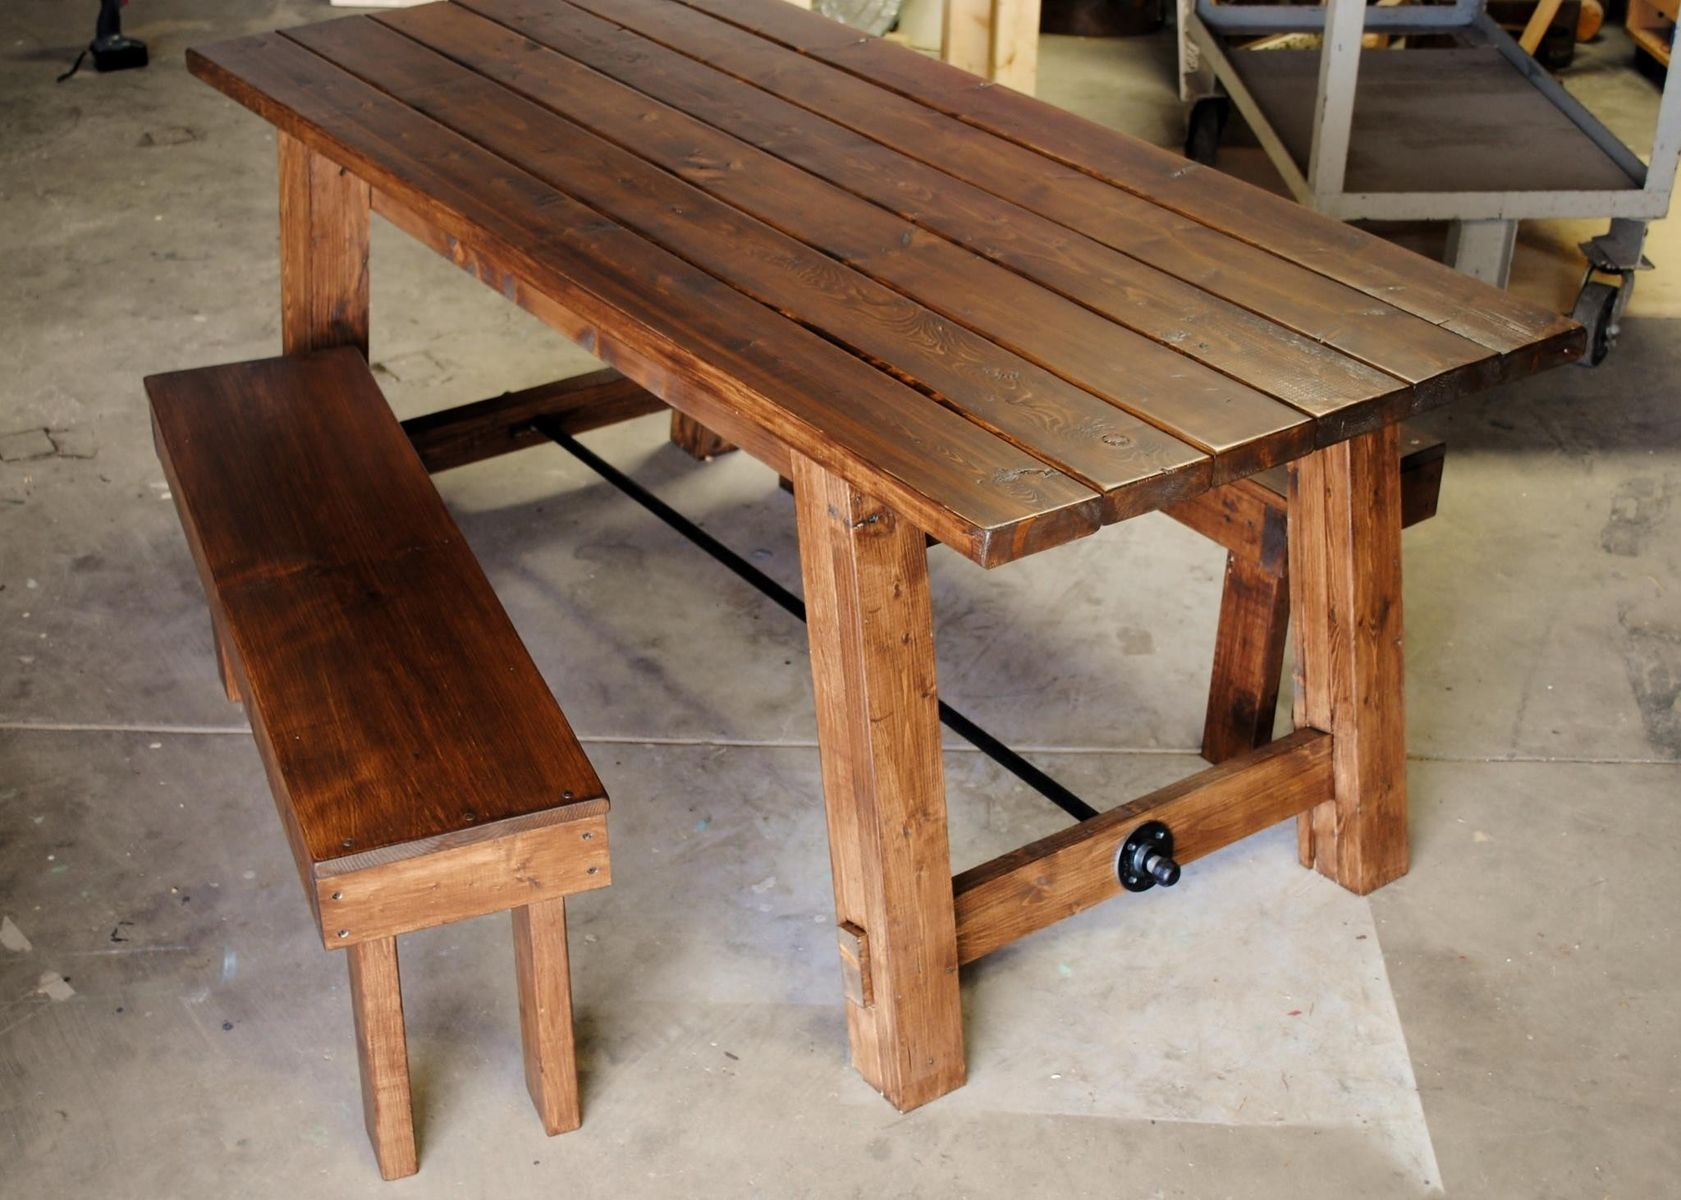 Hand made farmhouse table by sb designs for Table leg design ideas